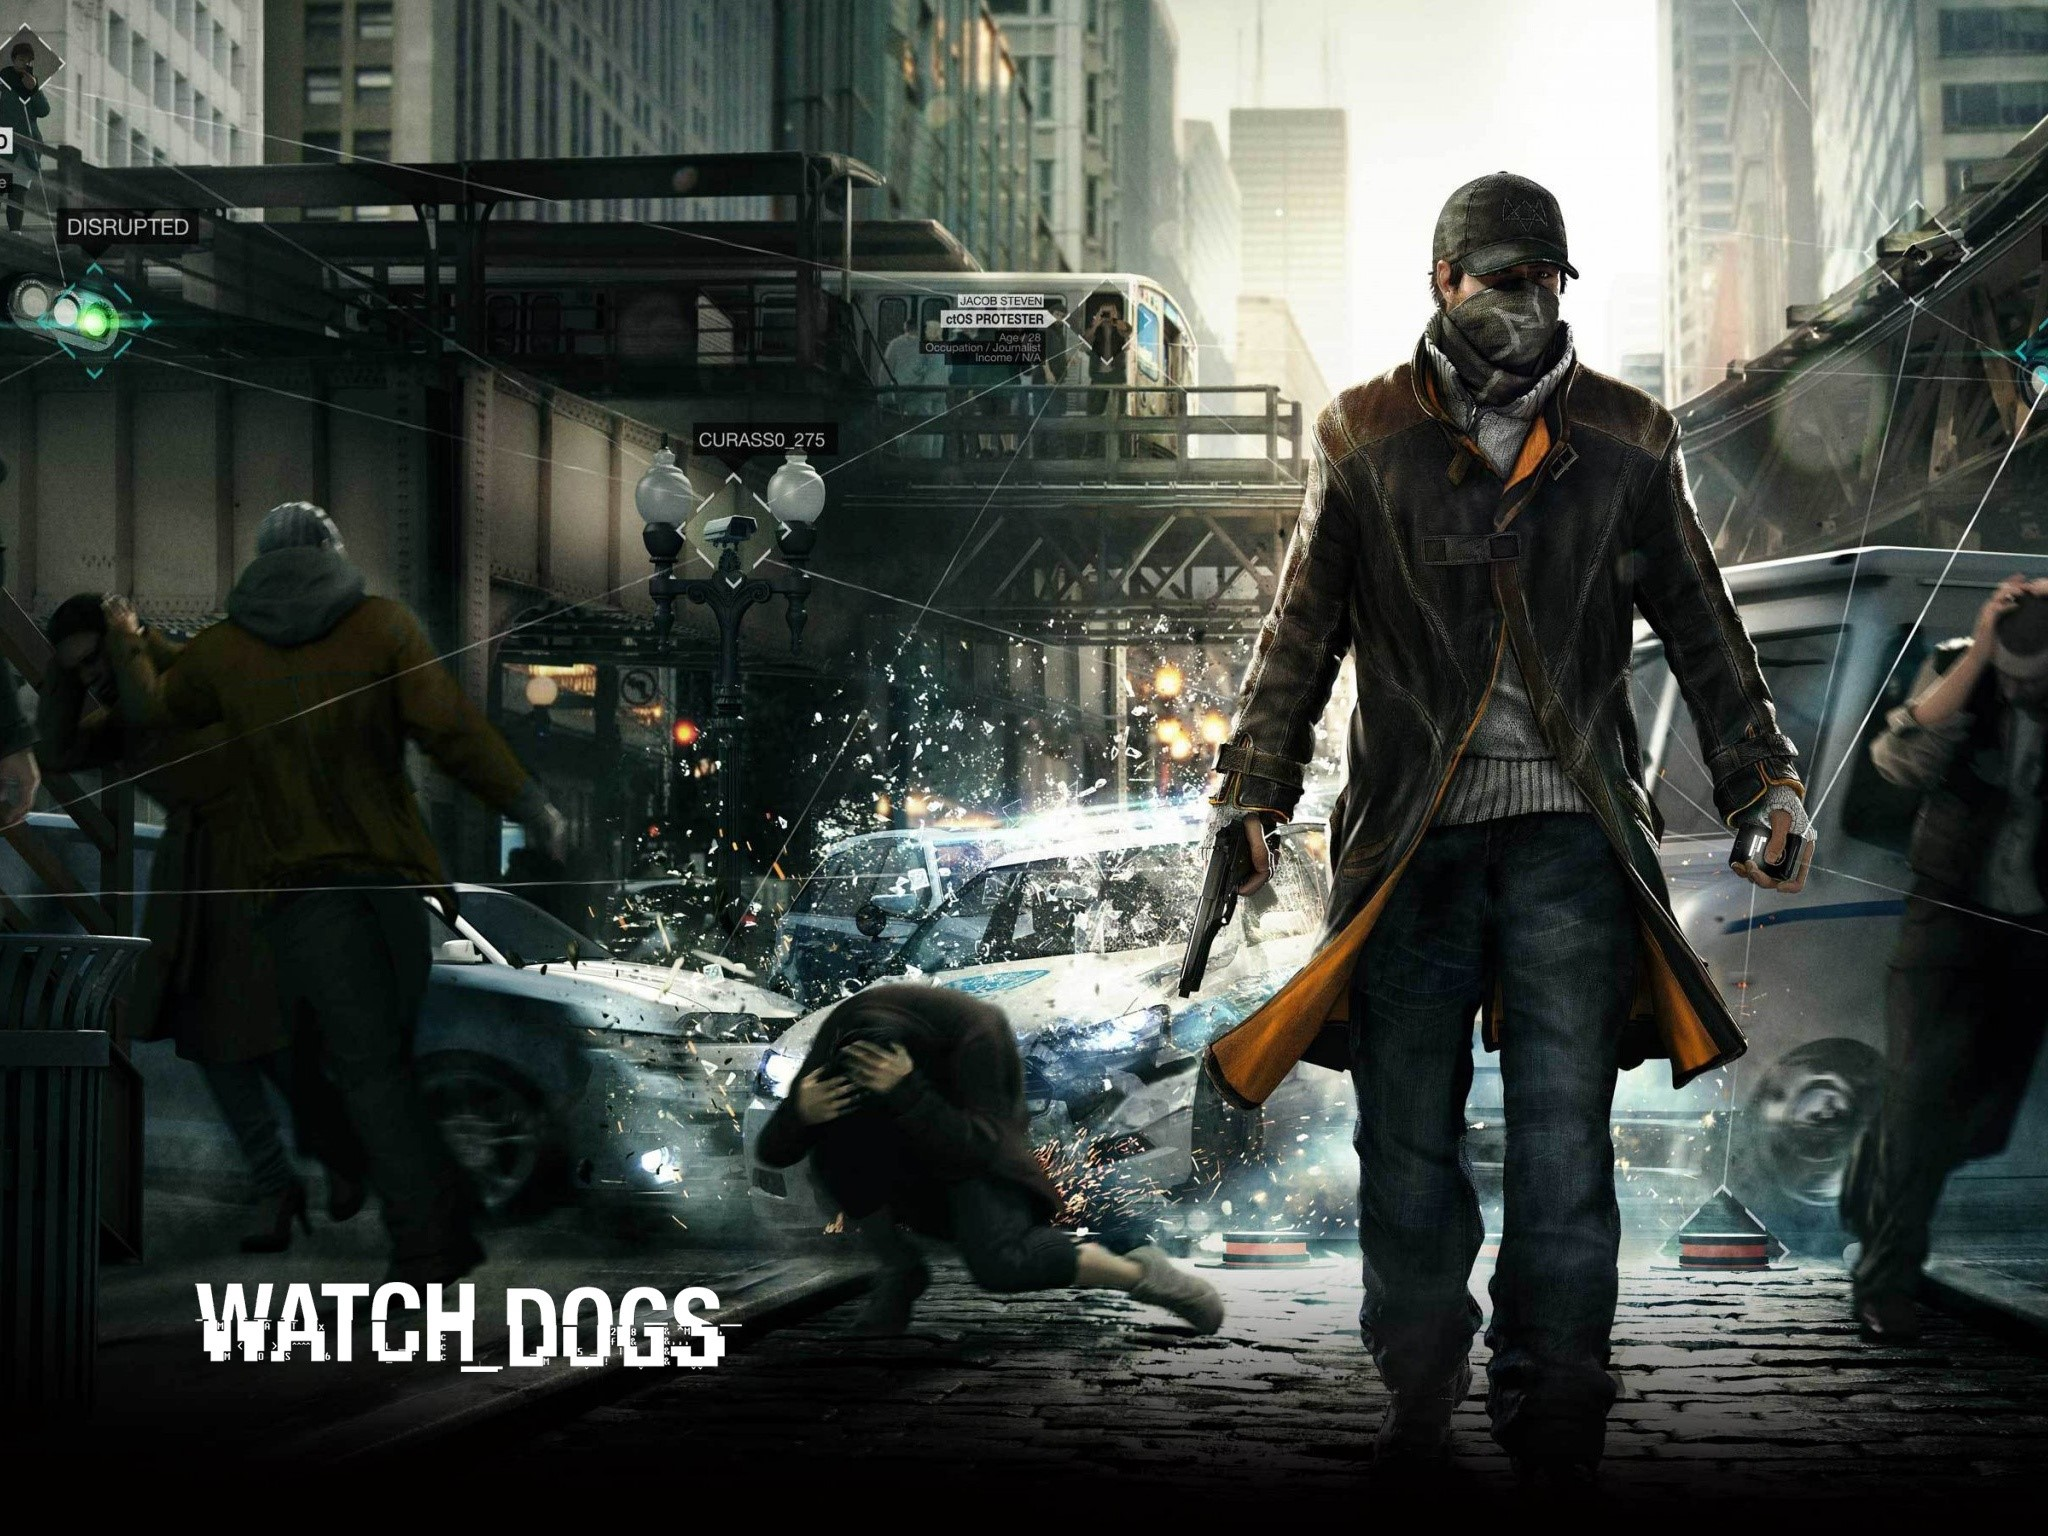 Wallpaper Watch dogs juego Images